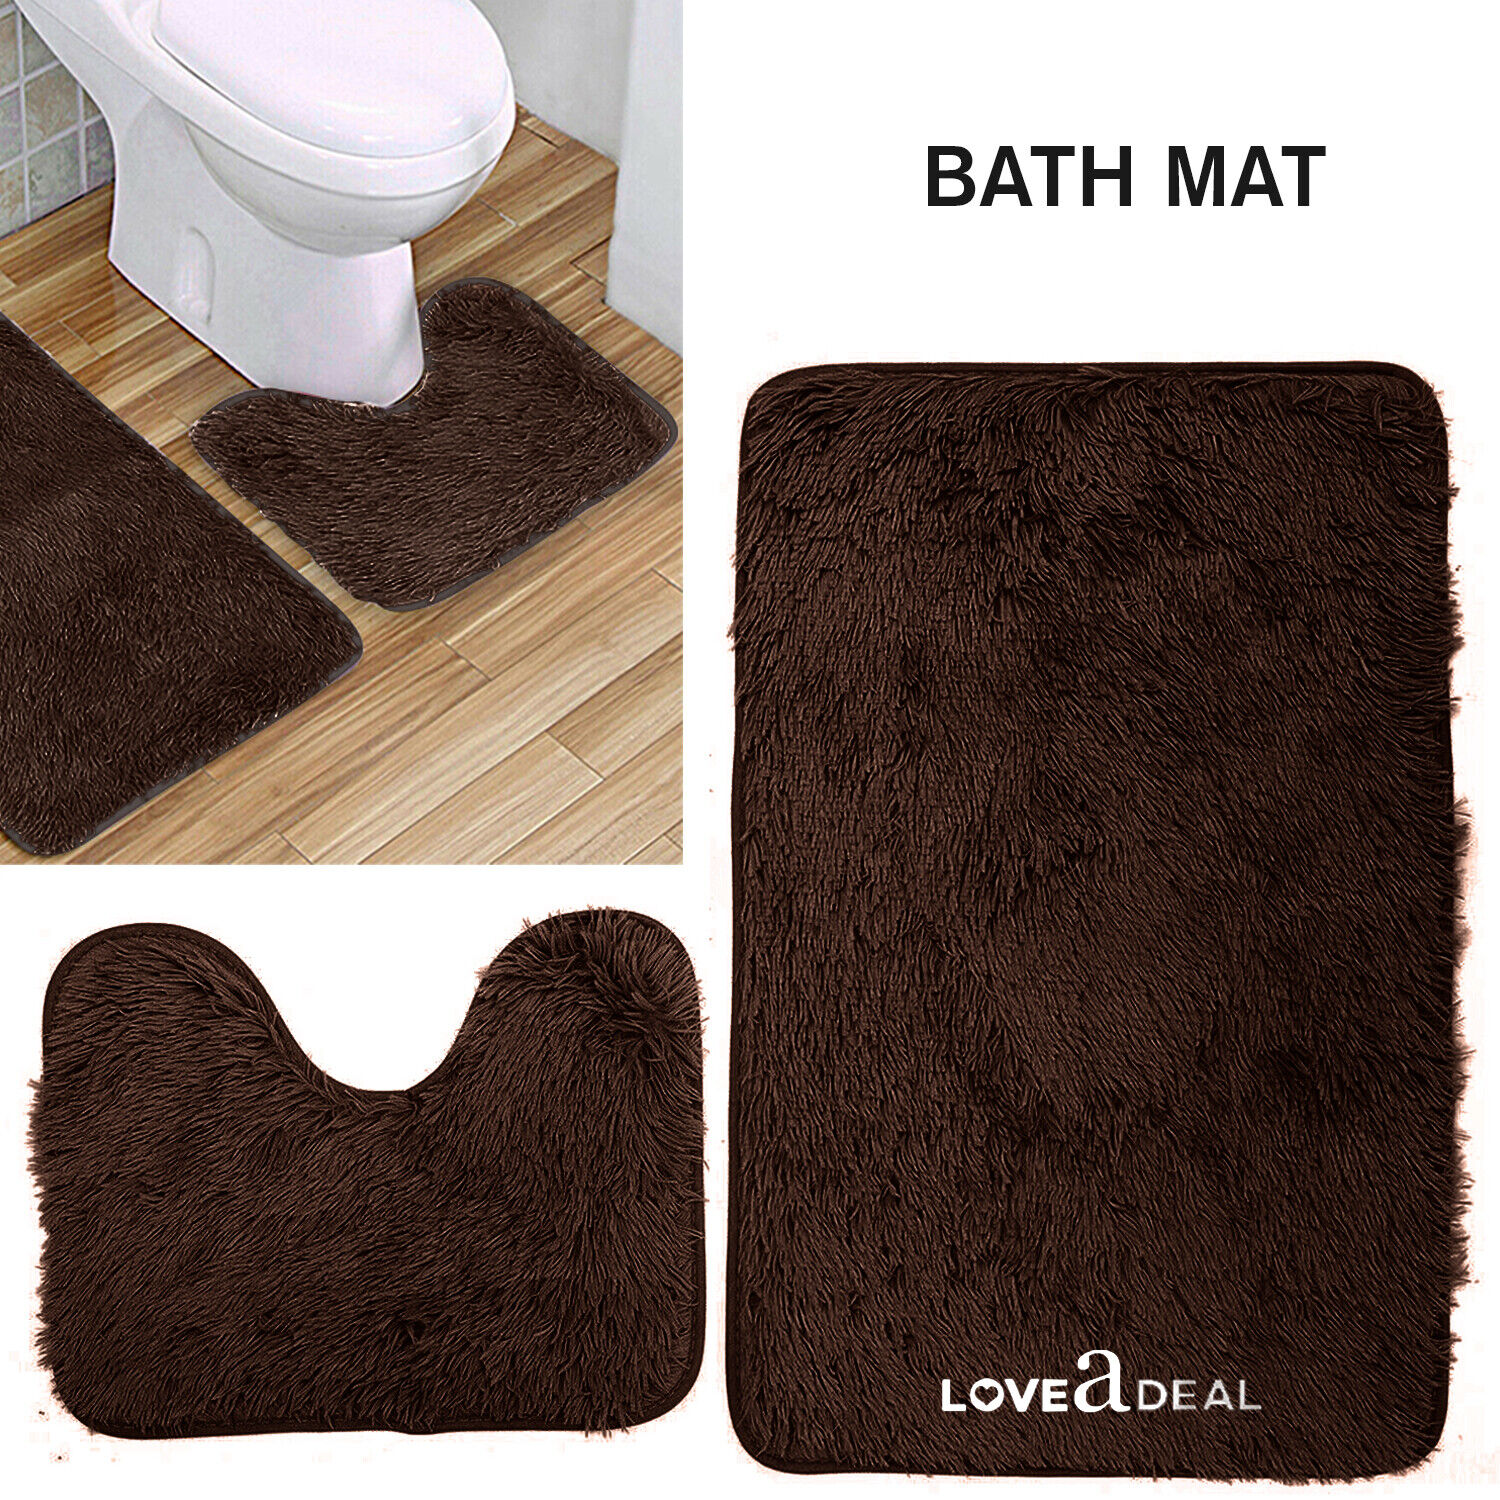 Shaggy Design Bath Mat Set Non Slip Pedestal Mat Toilet Bathroom Rugs Dark Brown Ebay